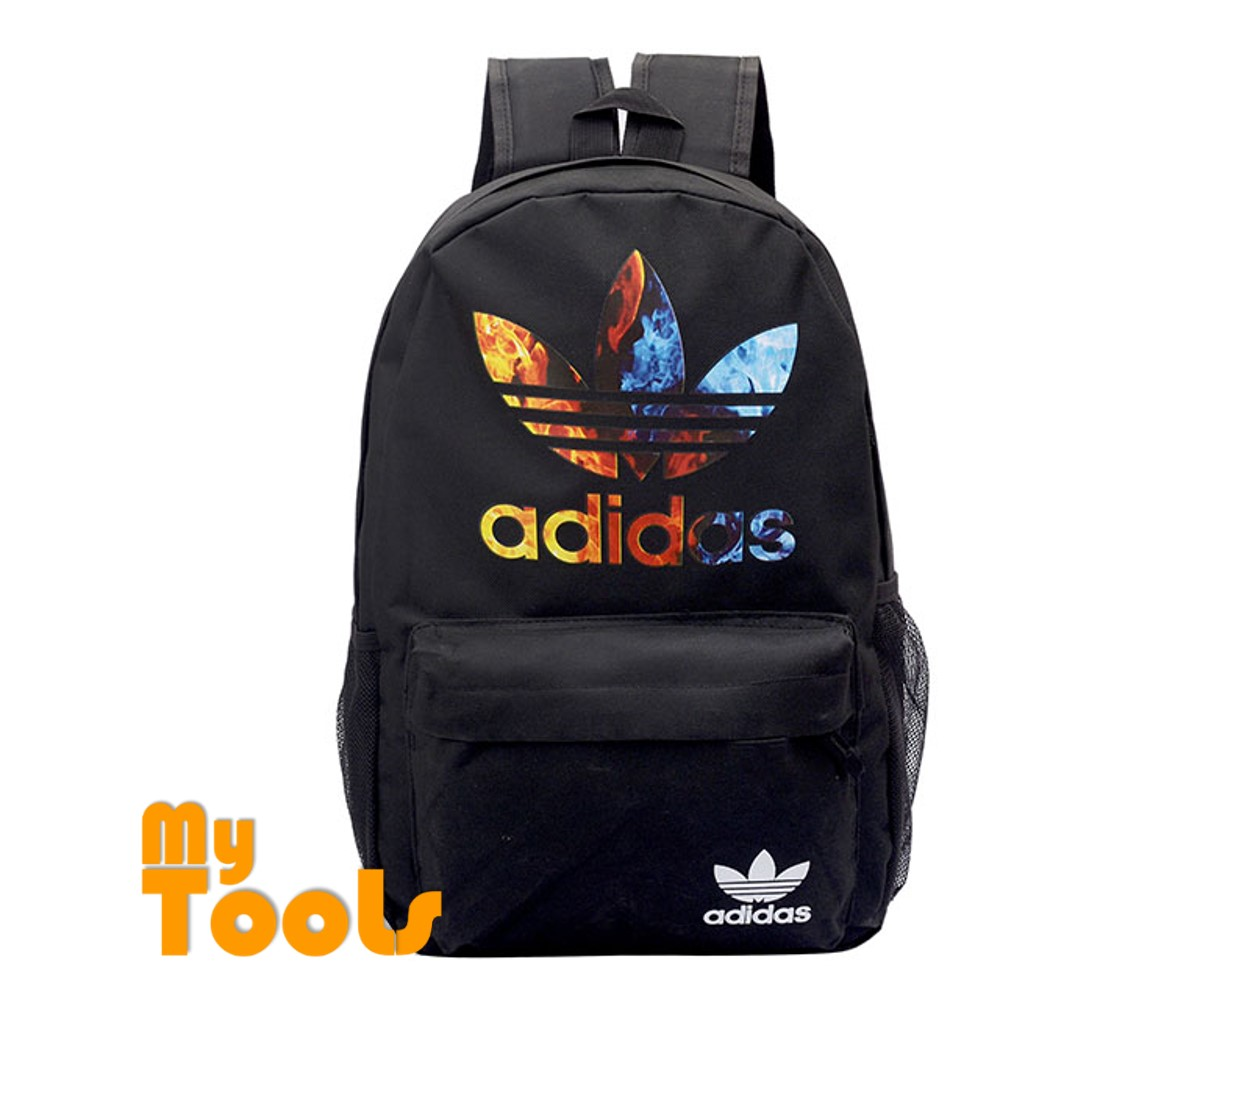 Adidas Laptop Sport Travel Backpack School Bag (Fire) aadc4a4737614